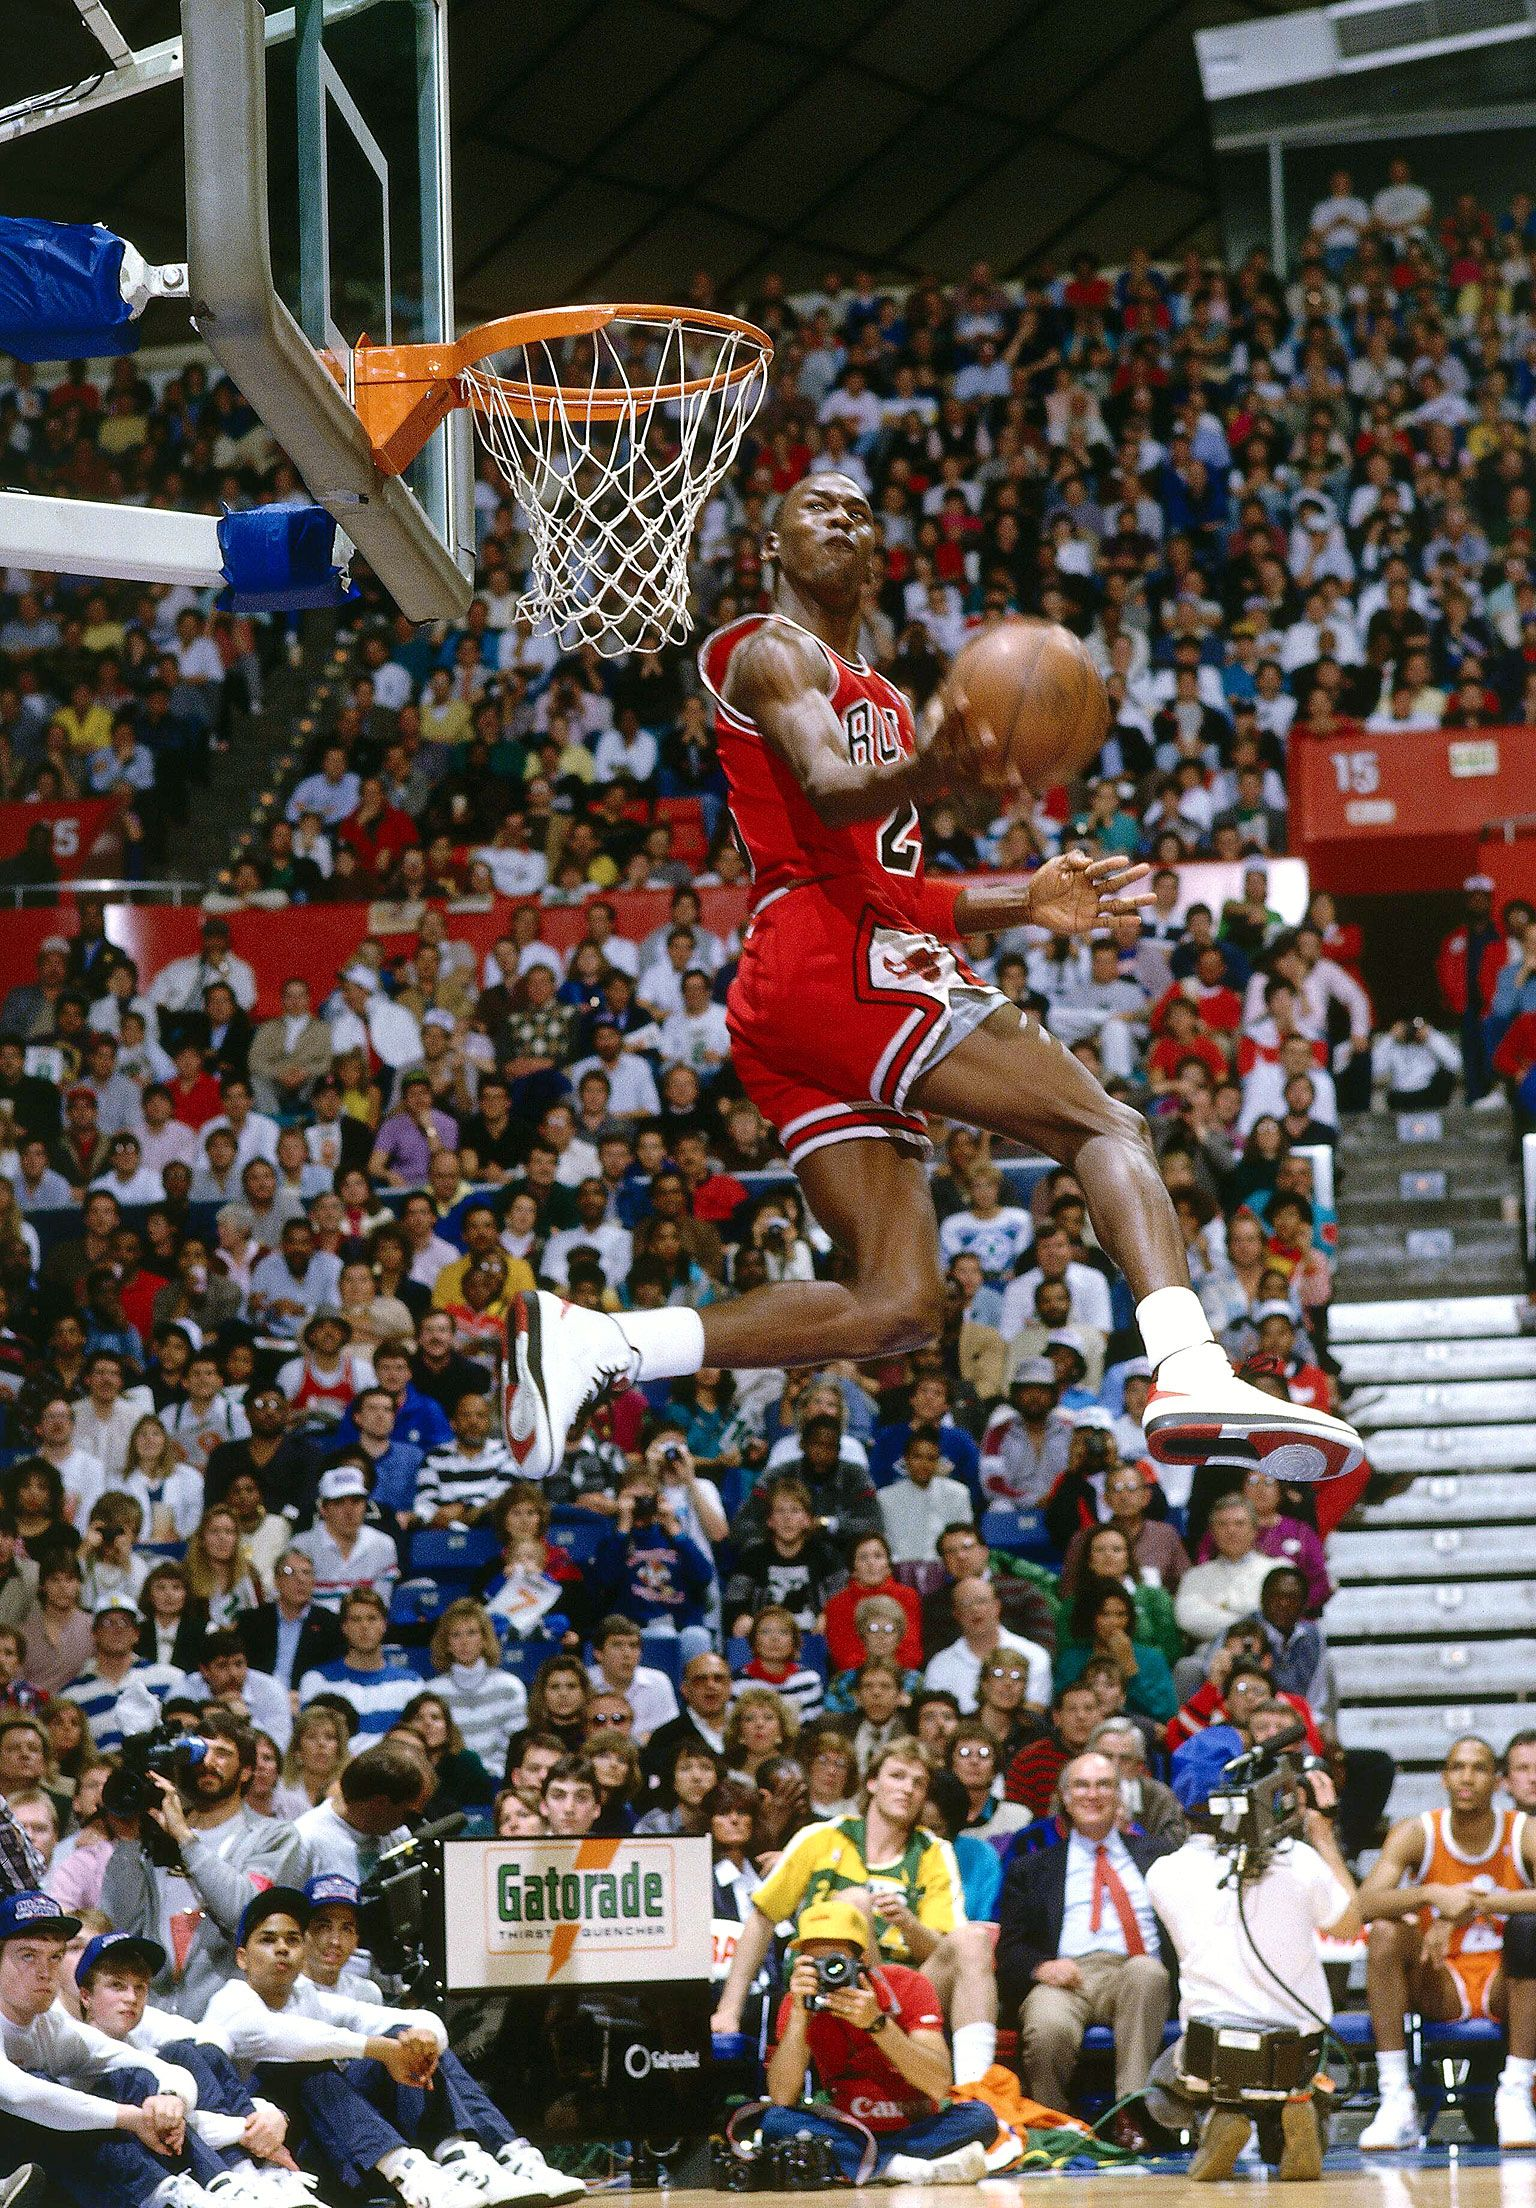 Michael Jordan Winning The 1987 Slam Dunk Competition With A Take Off From Free Throw Line MichaelJordan AirJordan